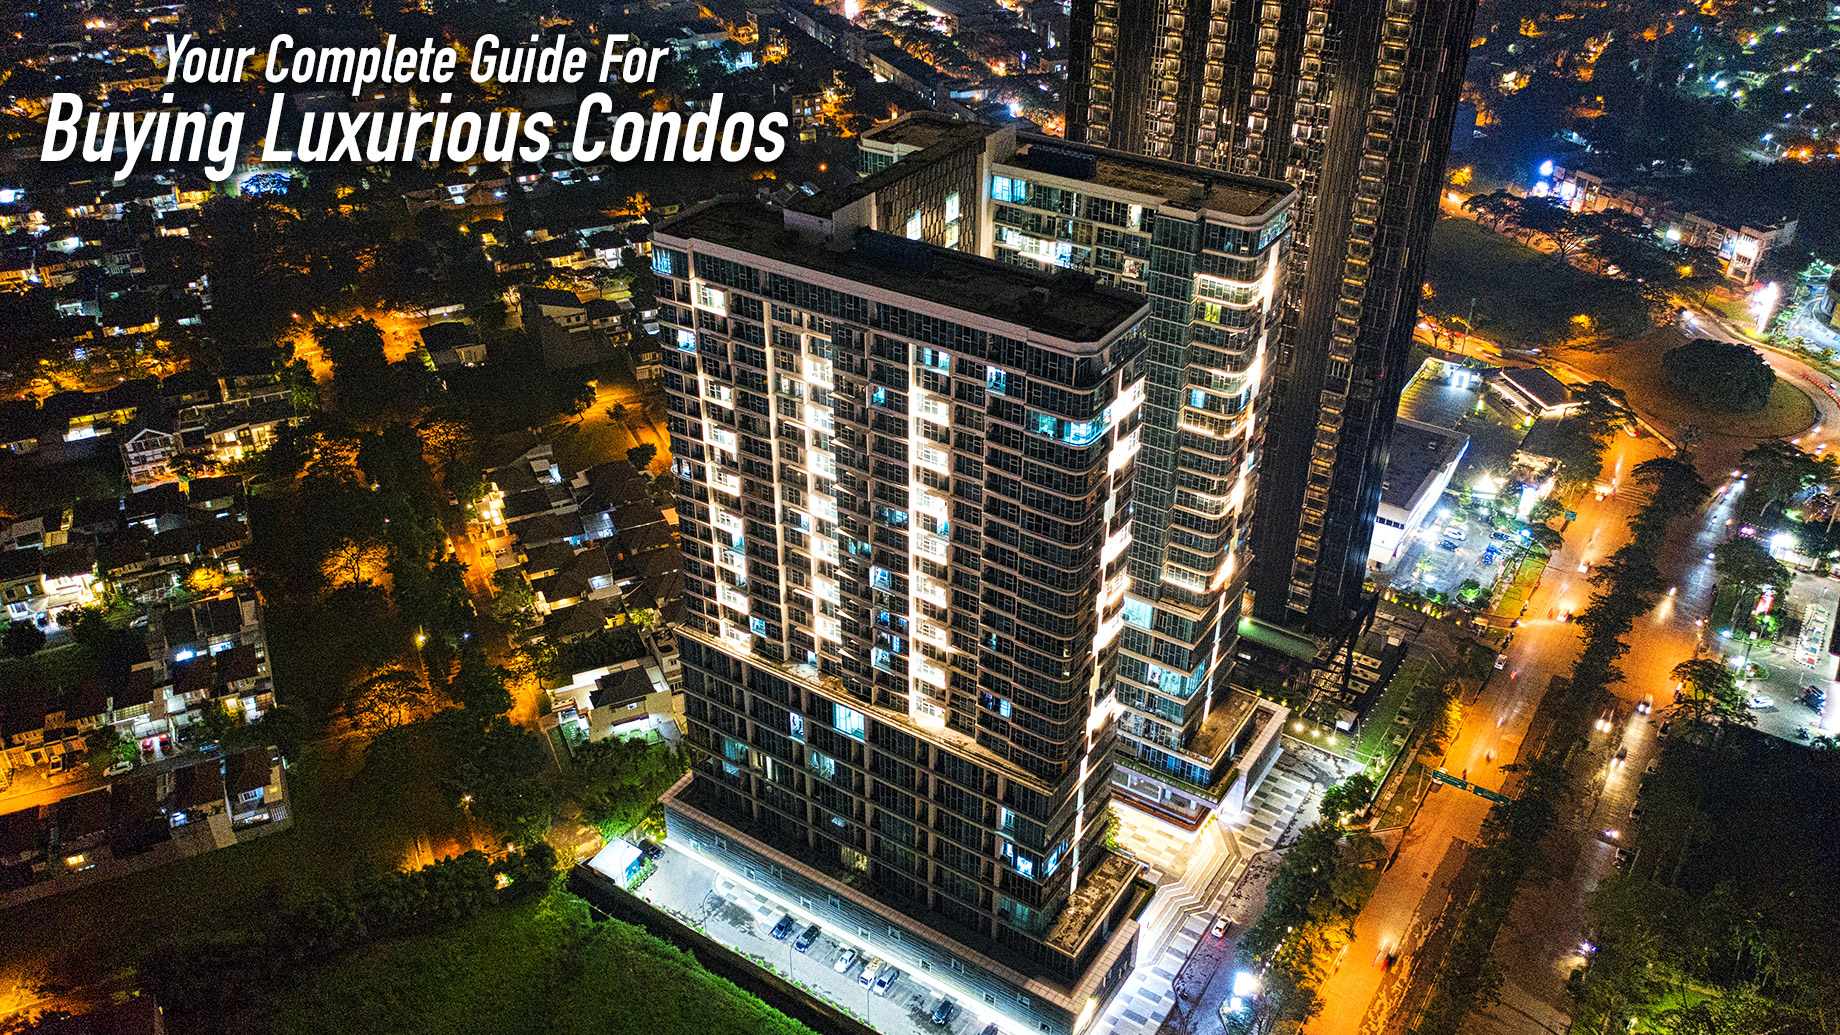 Your Complete Guide For Buying Luxurious Condos